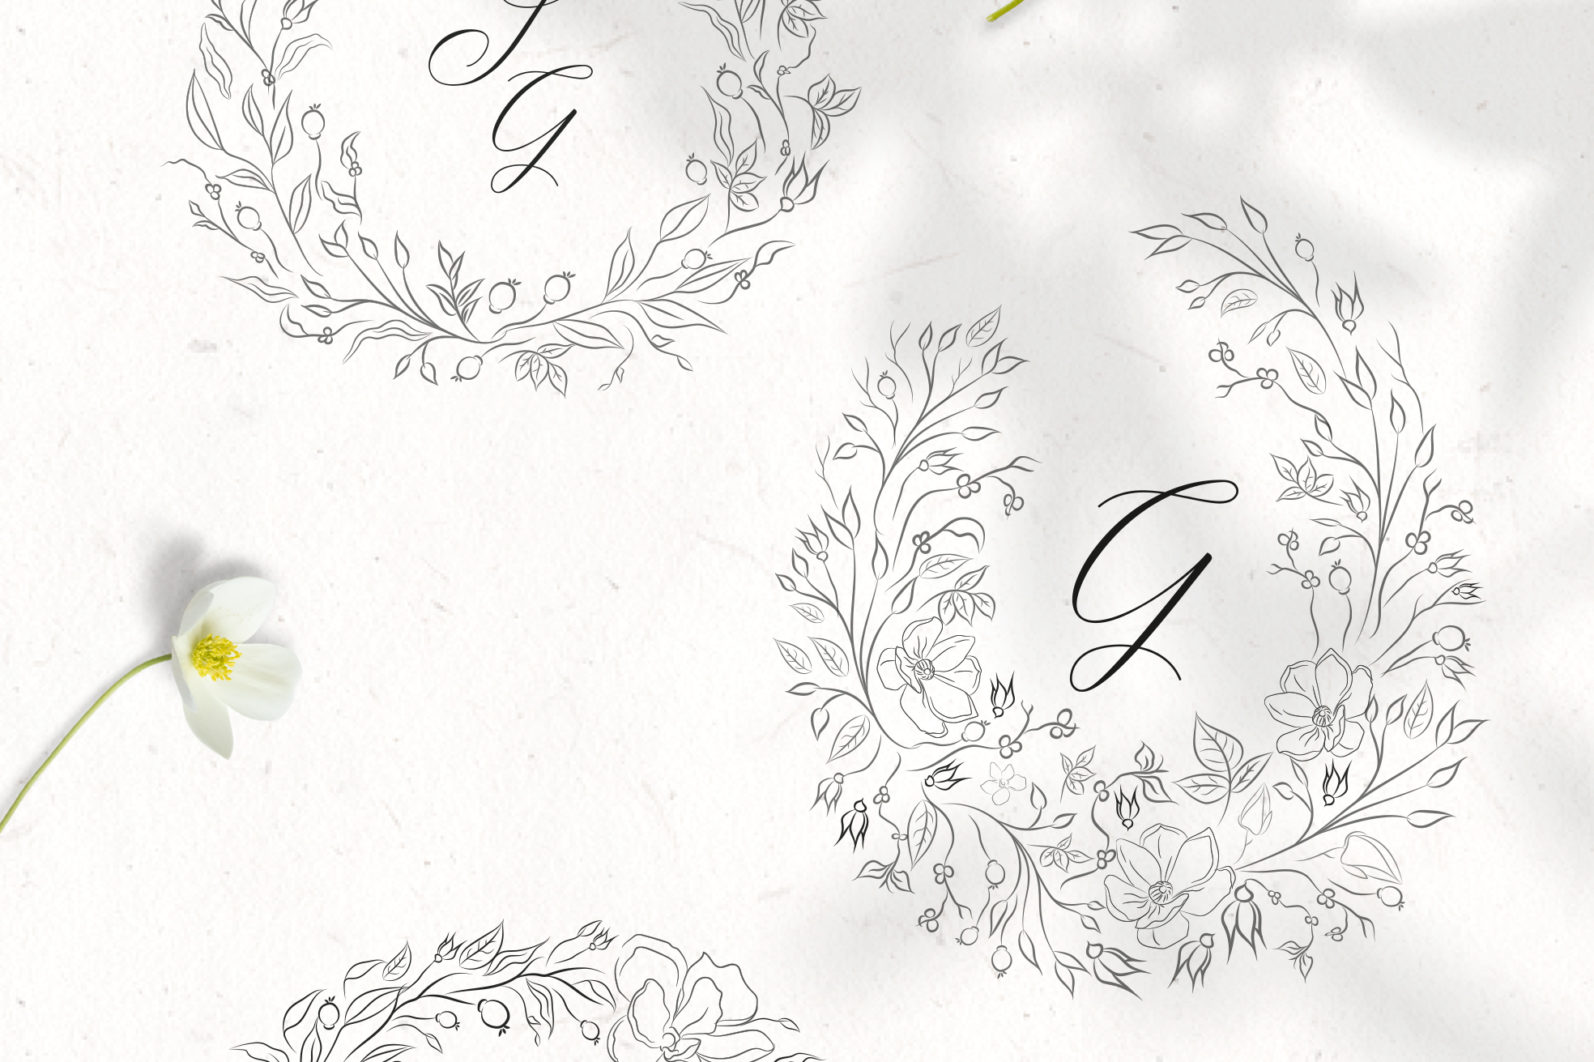 Floral Decorative Ornate Wreaths - ornate wreaths 3 scaled -